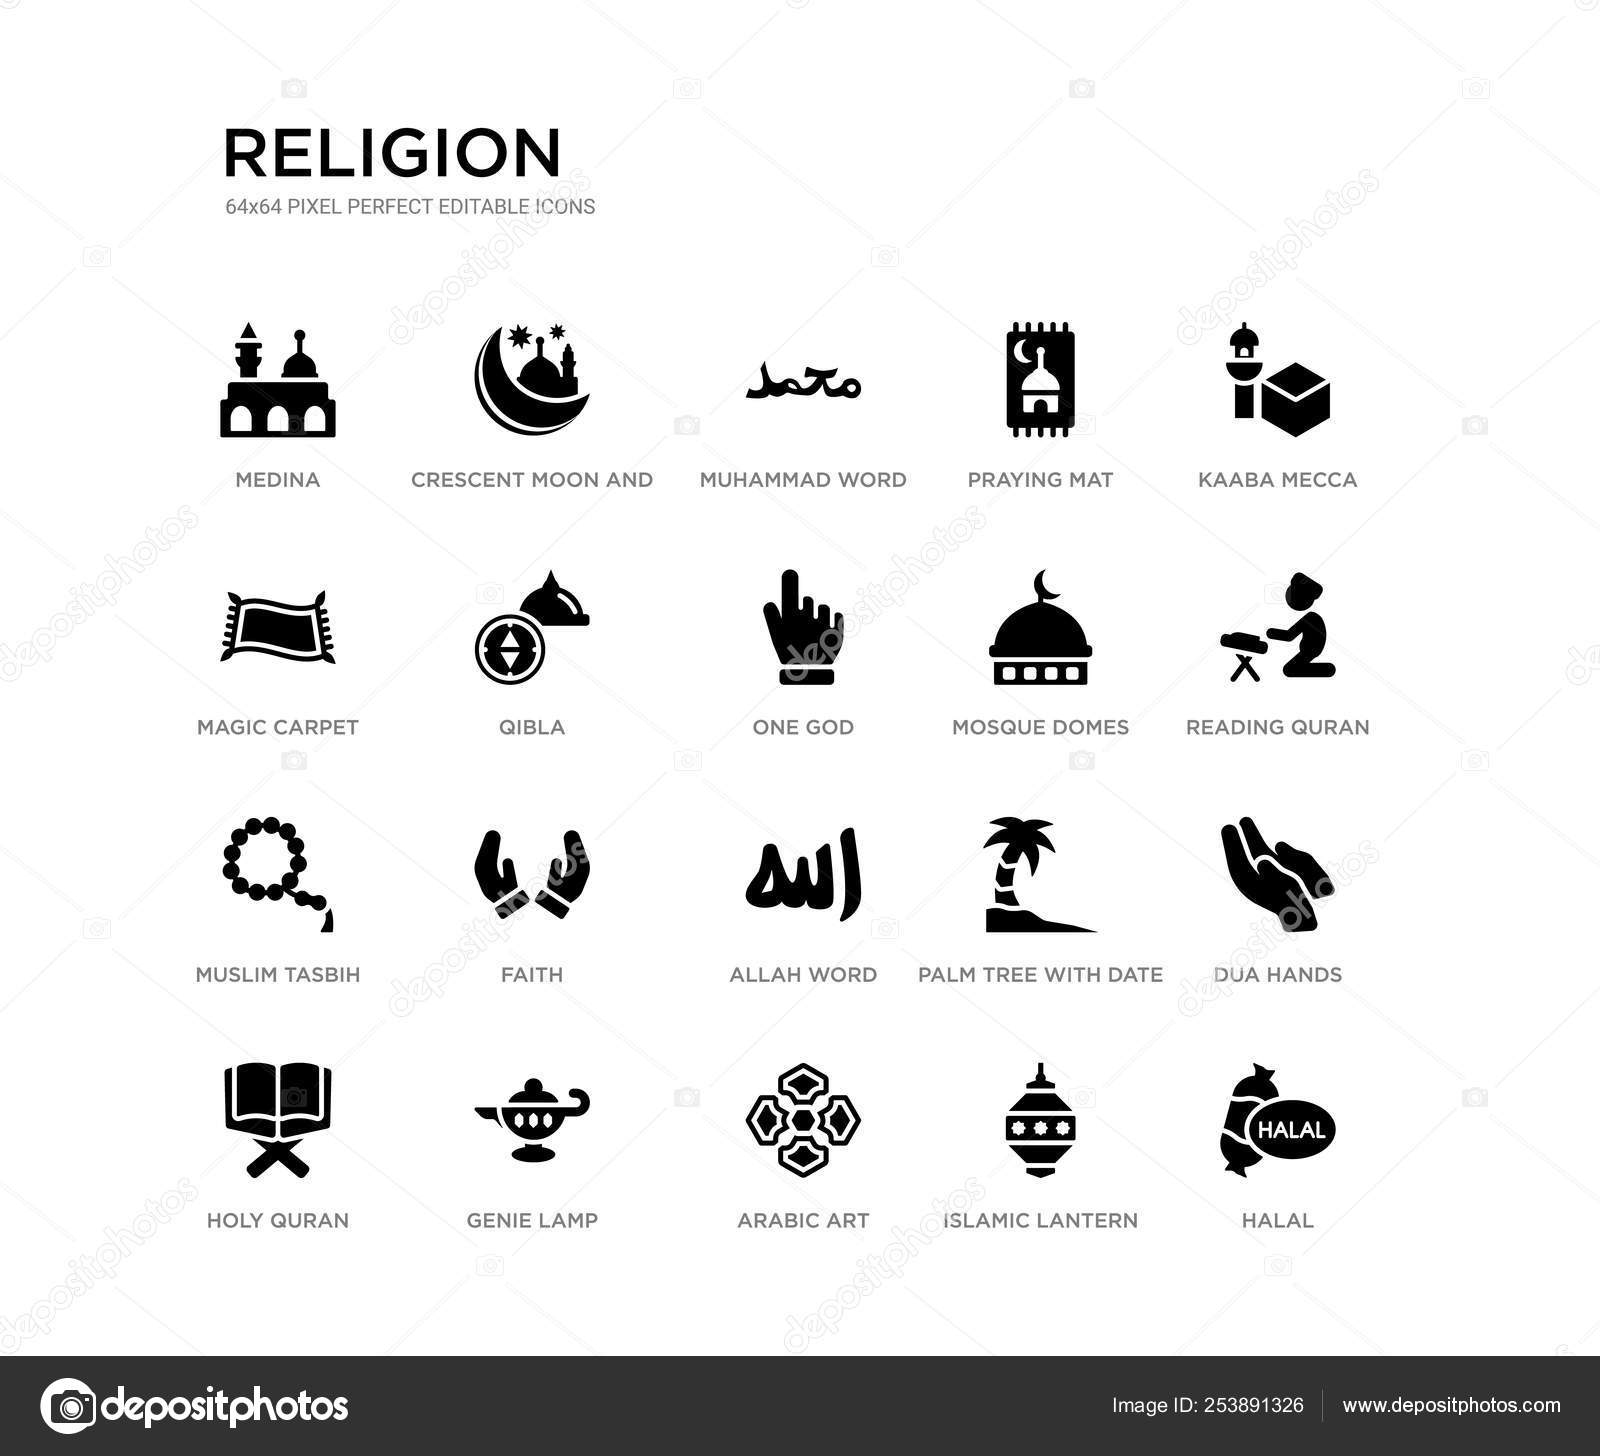 Set of 20 black filled vector icons such as halal, dua hands